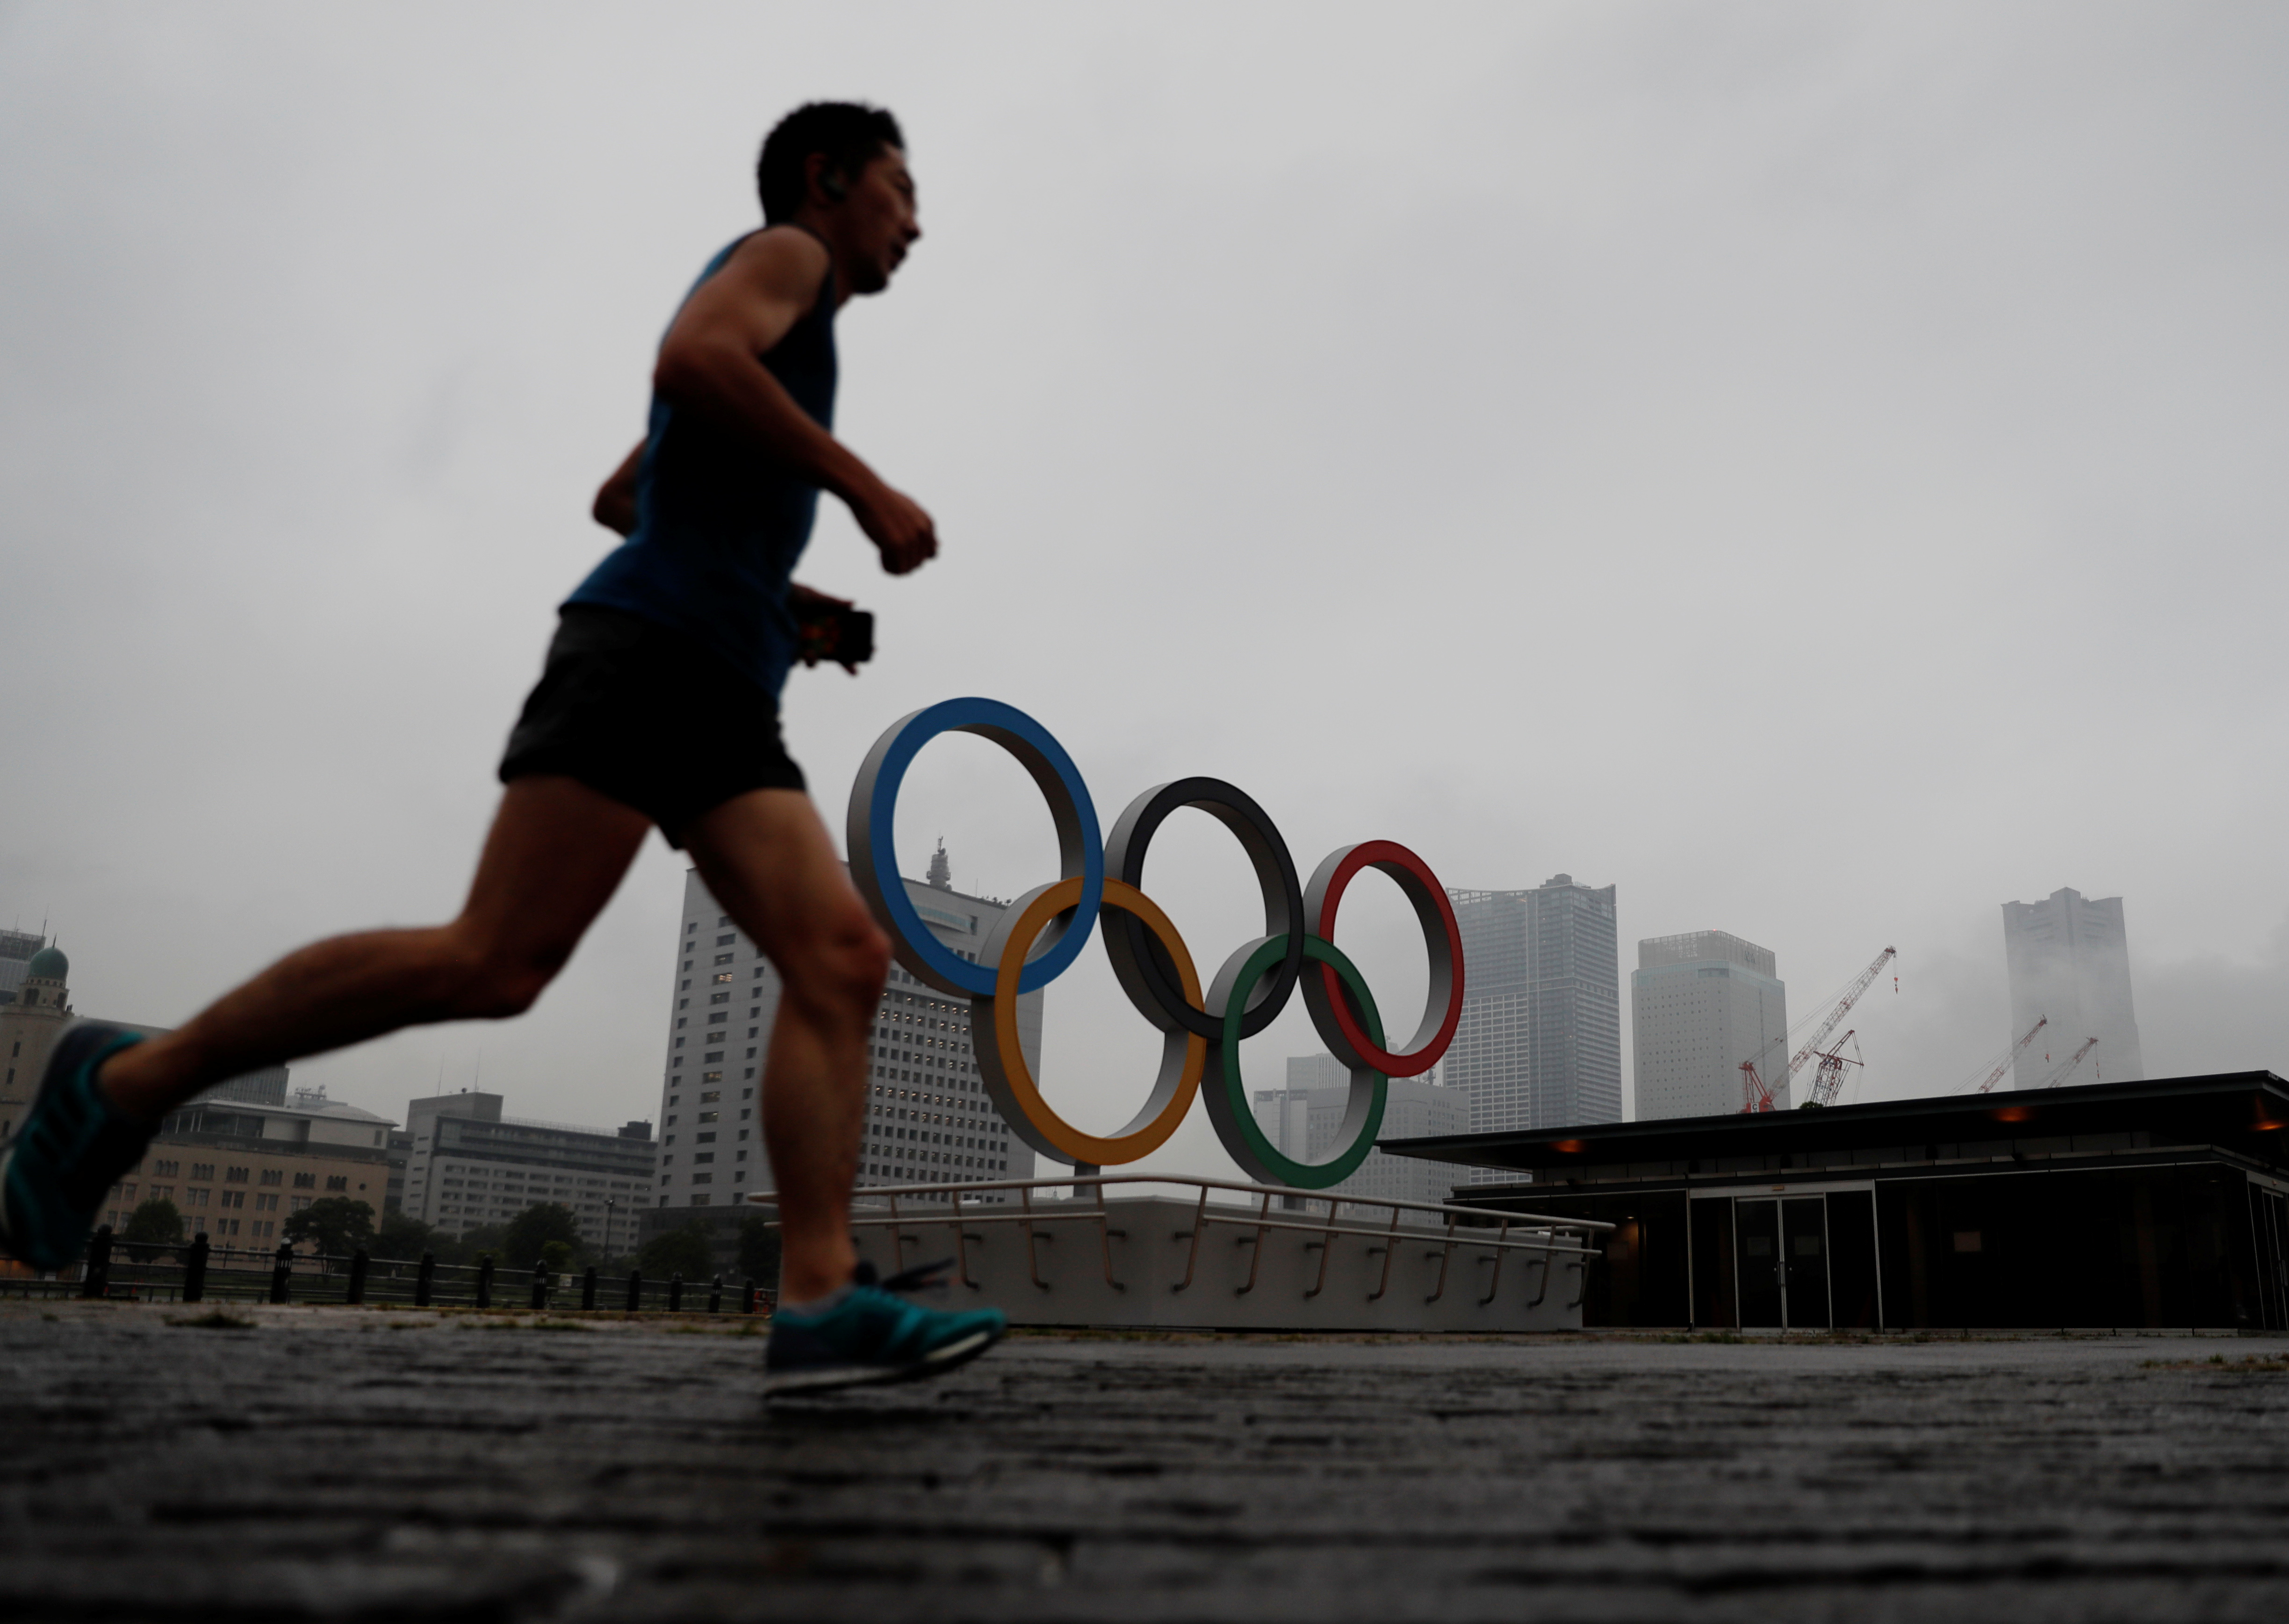 A jogger runs past a newly installed Olympic rings for celebrating the 2020 Tokyo Olympic Games in Yokohama, Japan, June 30, 2021.   REUTERS/Kim Kyung-Hoon